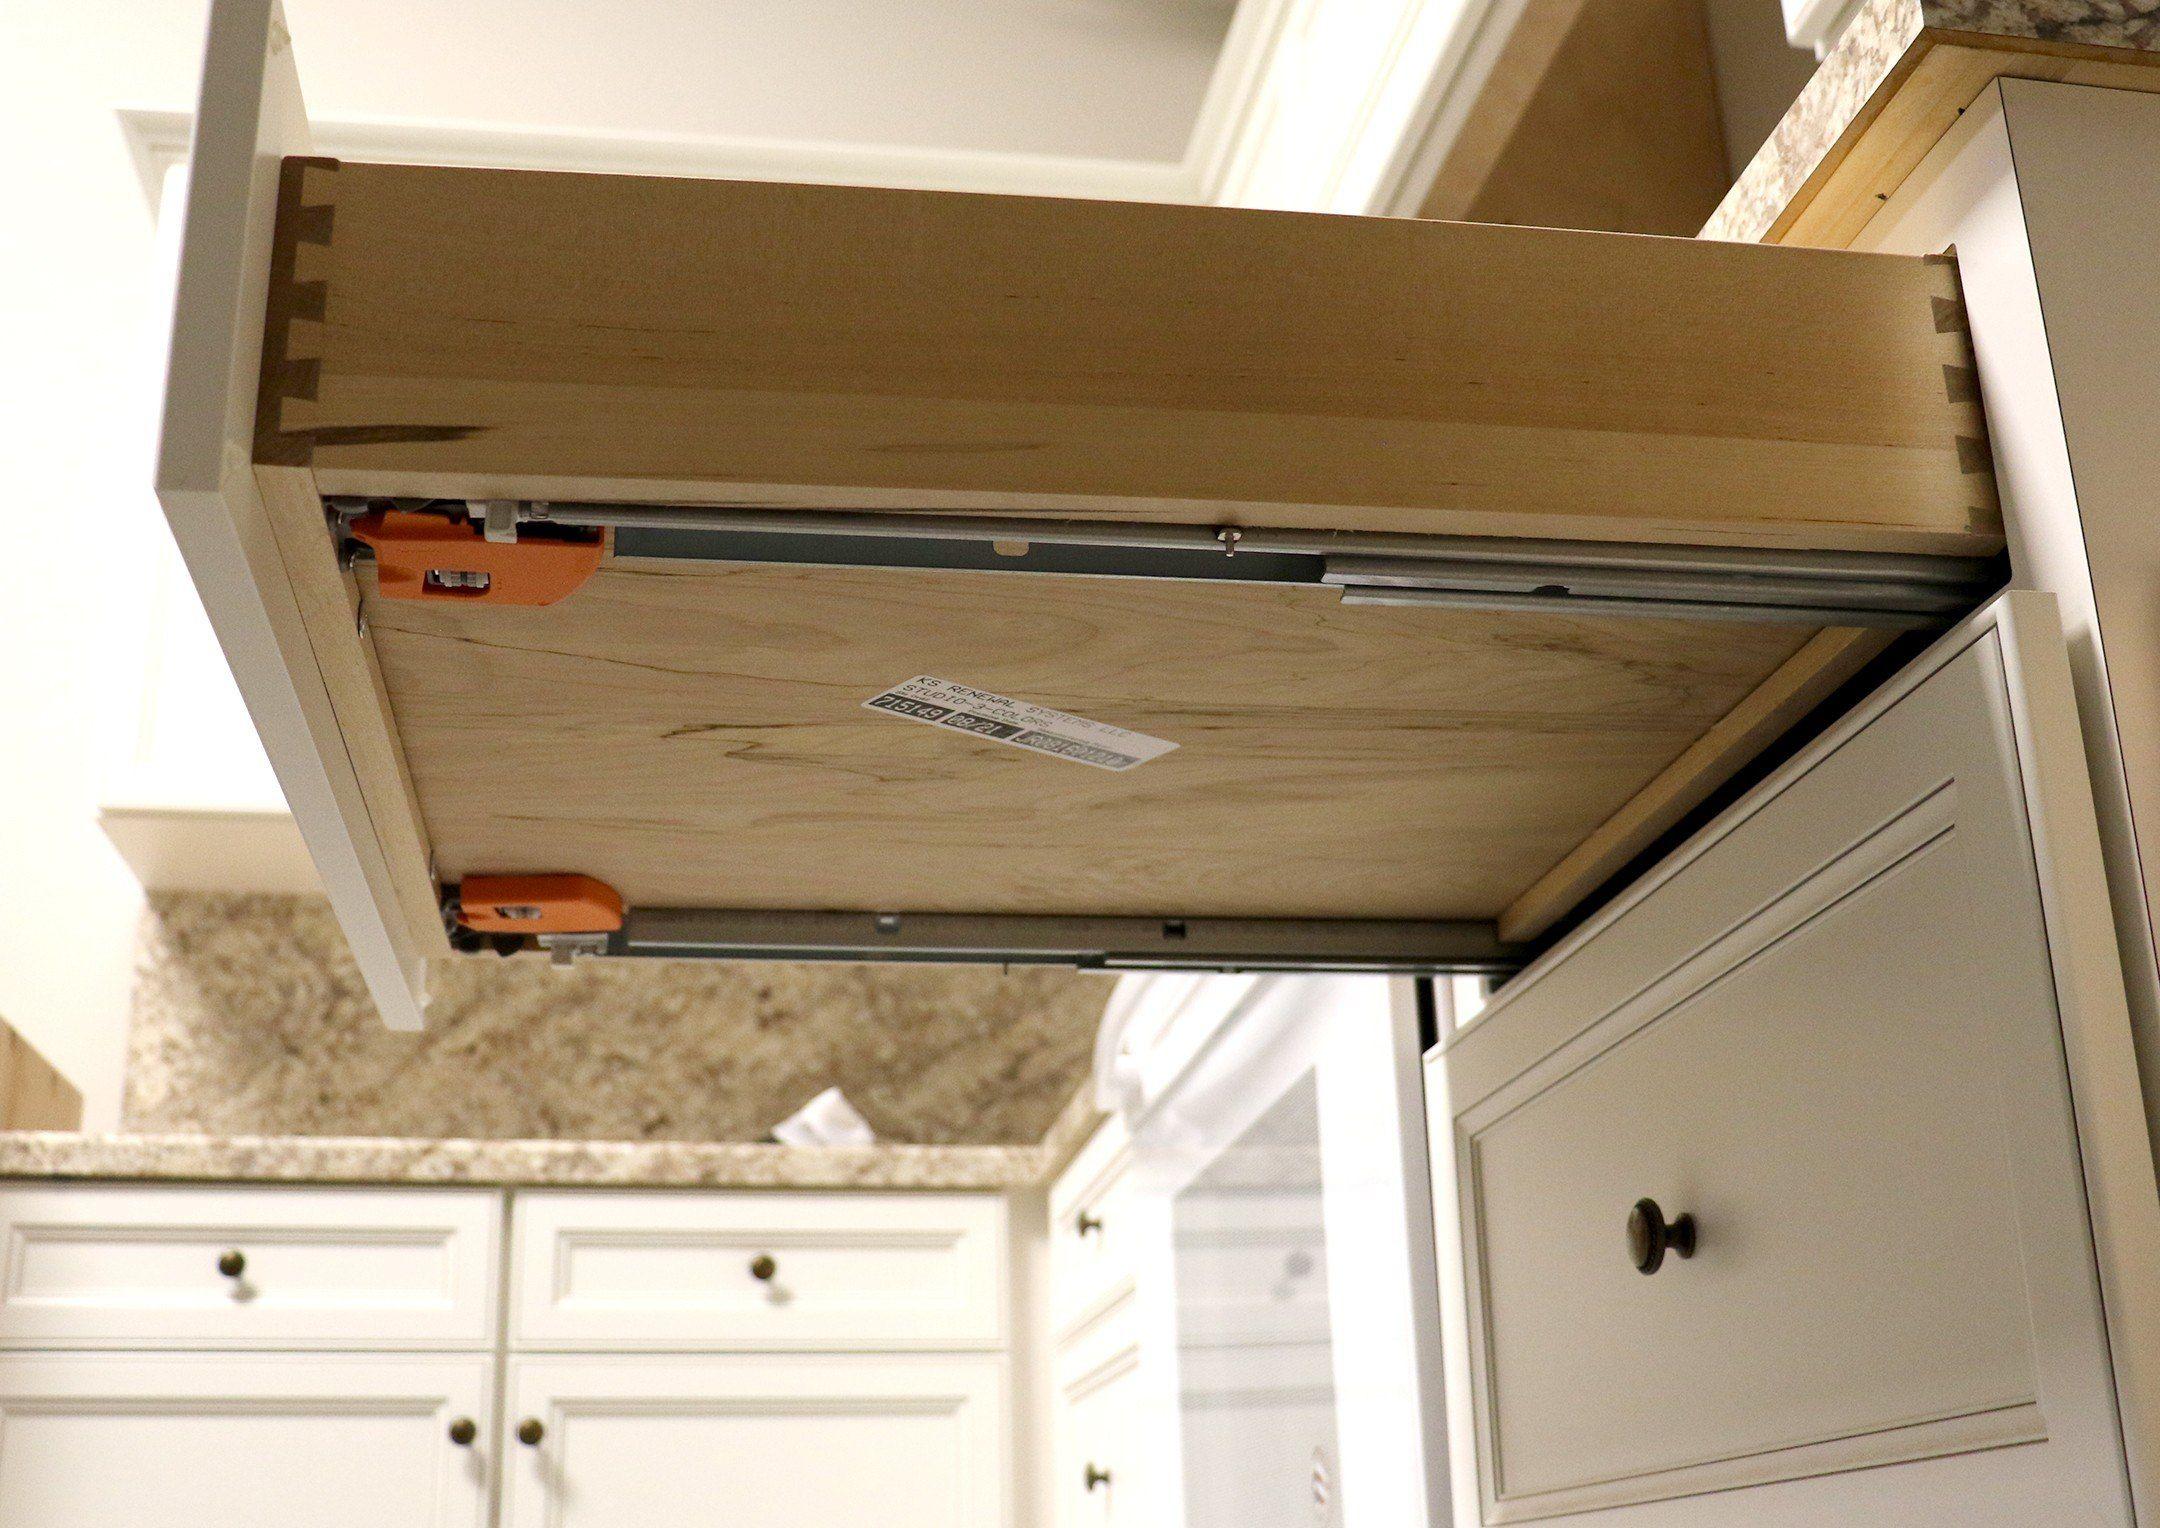 How To Install Blum Undermount Drawer Glides Kitchen Cabinet Remodel Drawers Solid Wood Cabinets